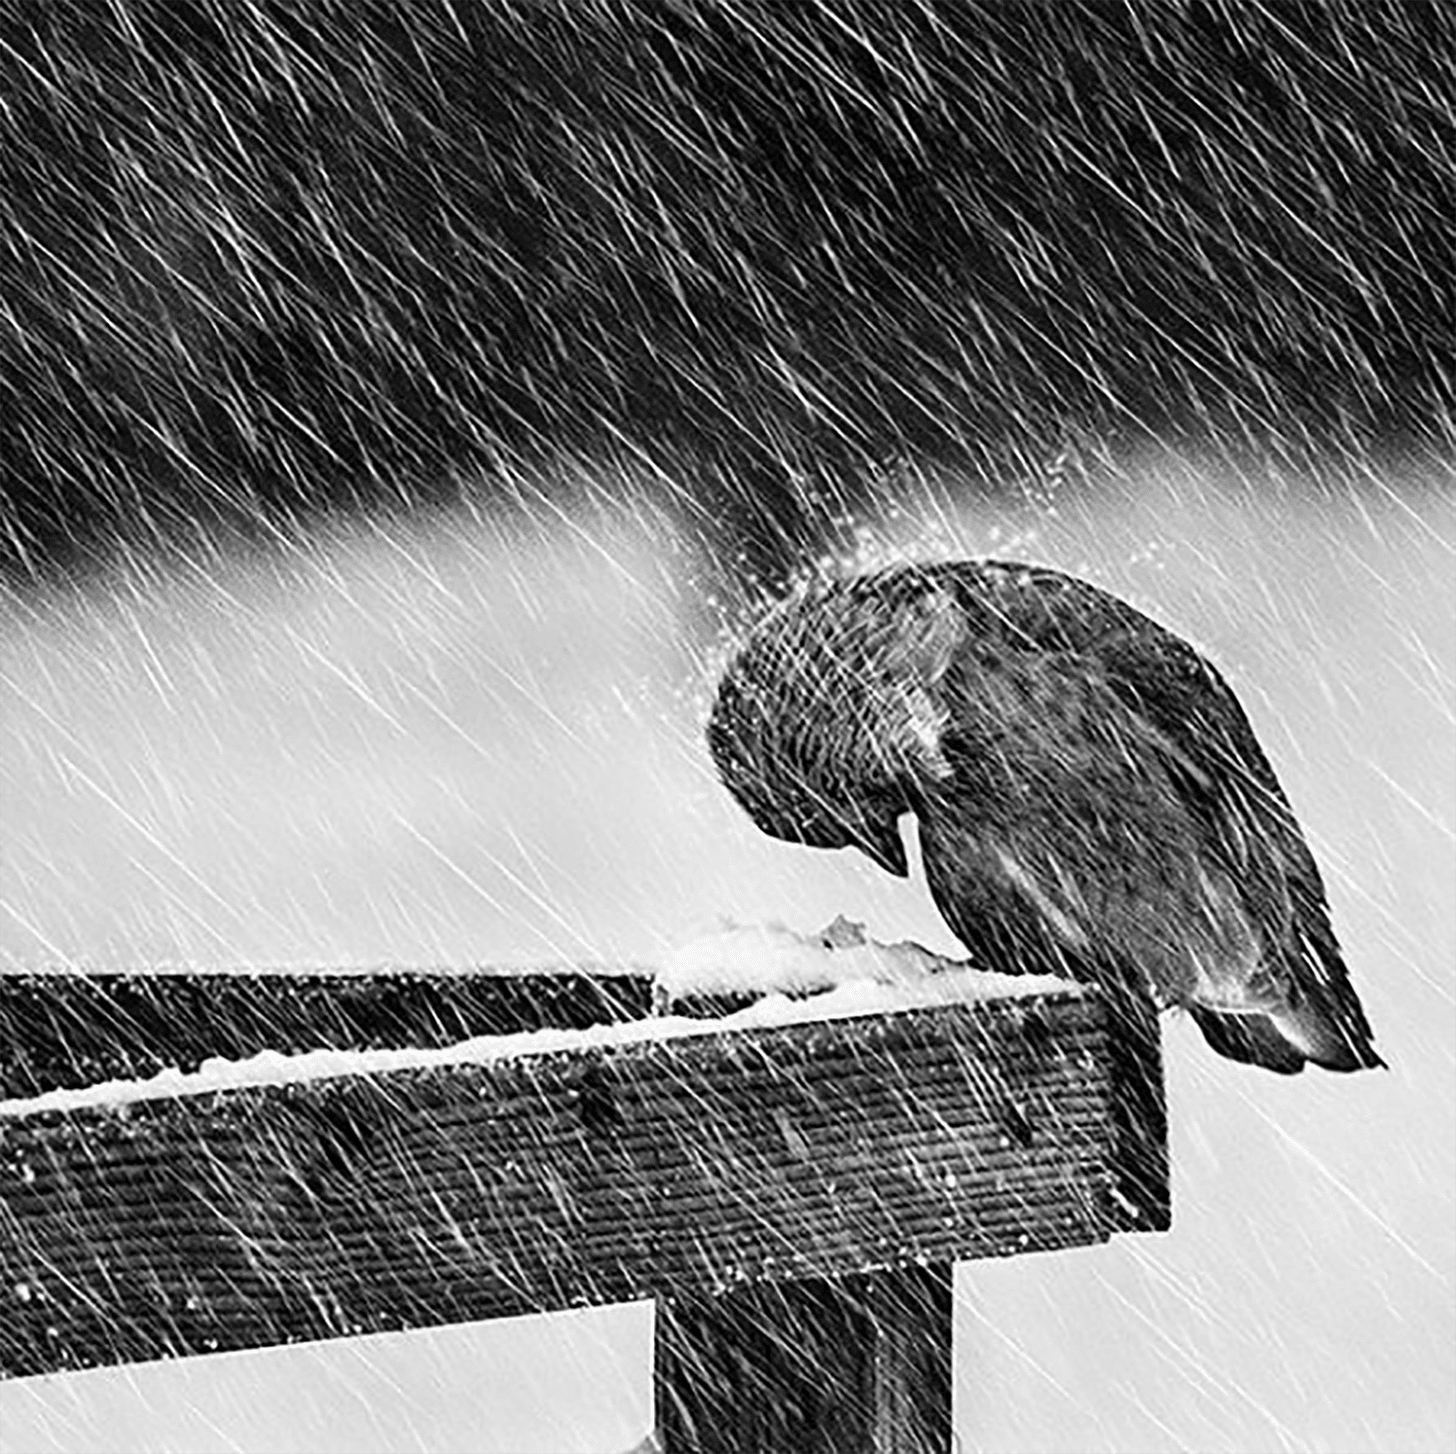 A bird with its head bowed against the rain by Mikael Sundberg